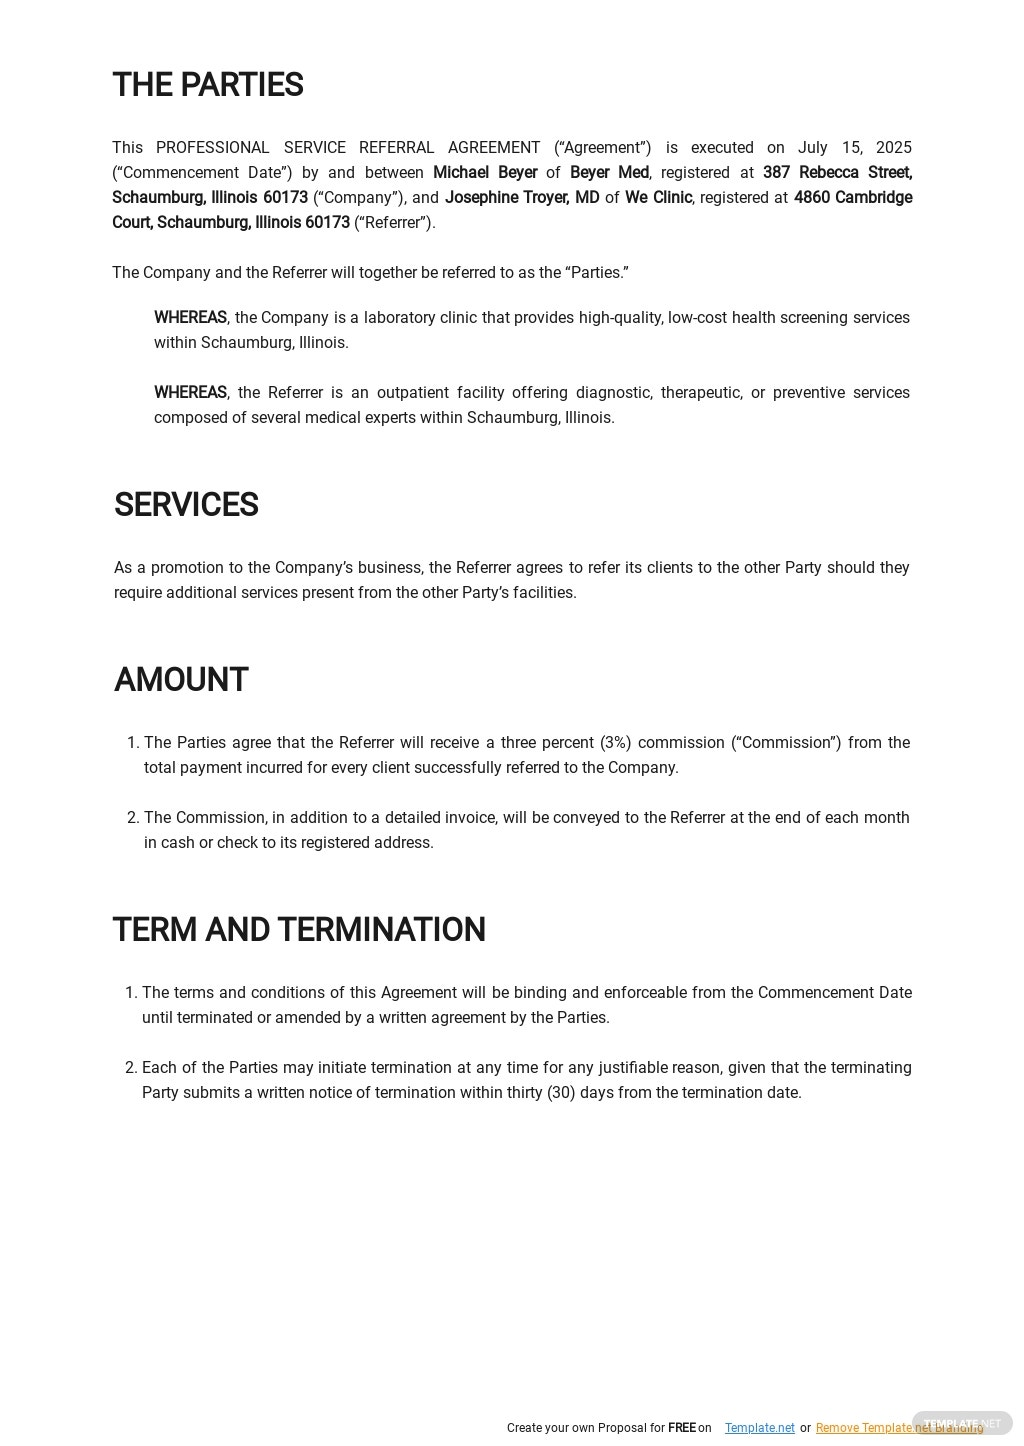 Professional Services Referral Agreement Template 1.jpe